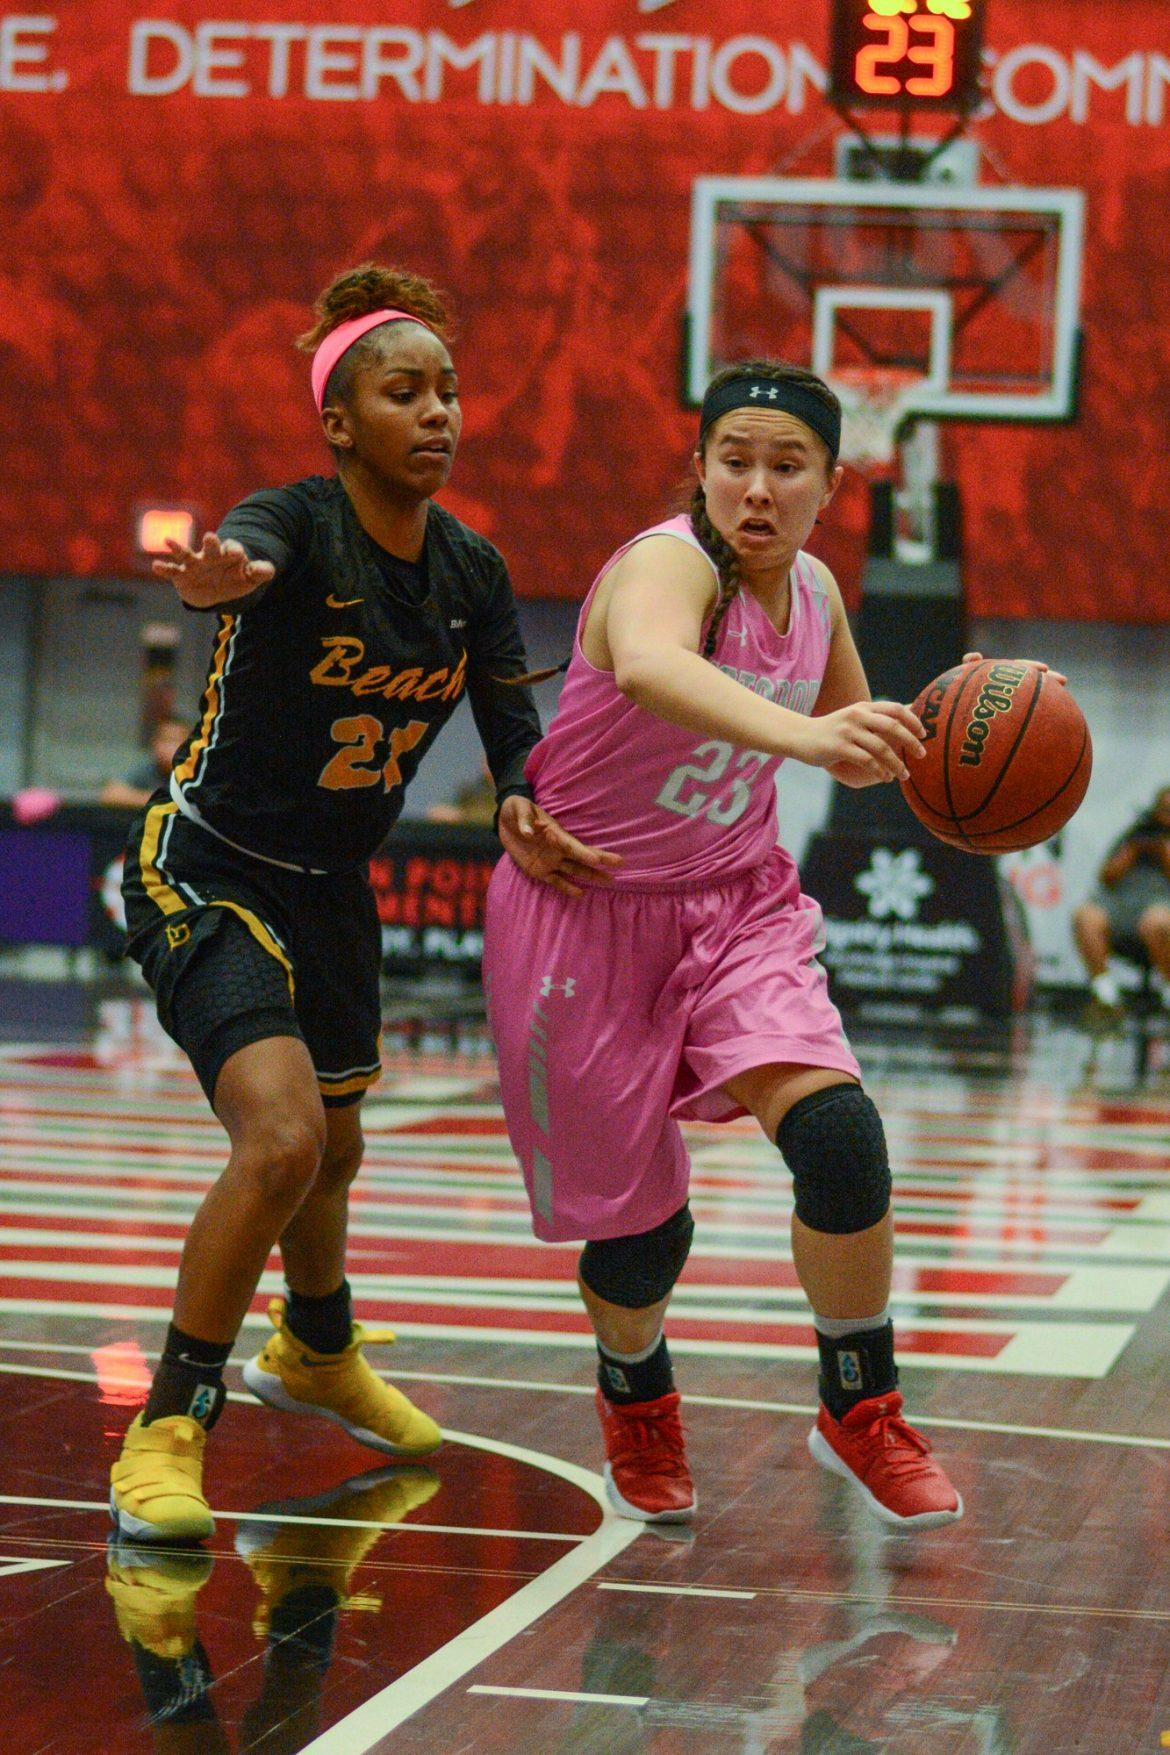 Second year Guard, Hayley Tanabe drives one in on Long Beach defender Shanaijah Davison. Photo credit: Joshua Pacheco